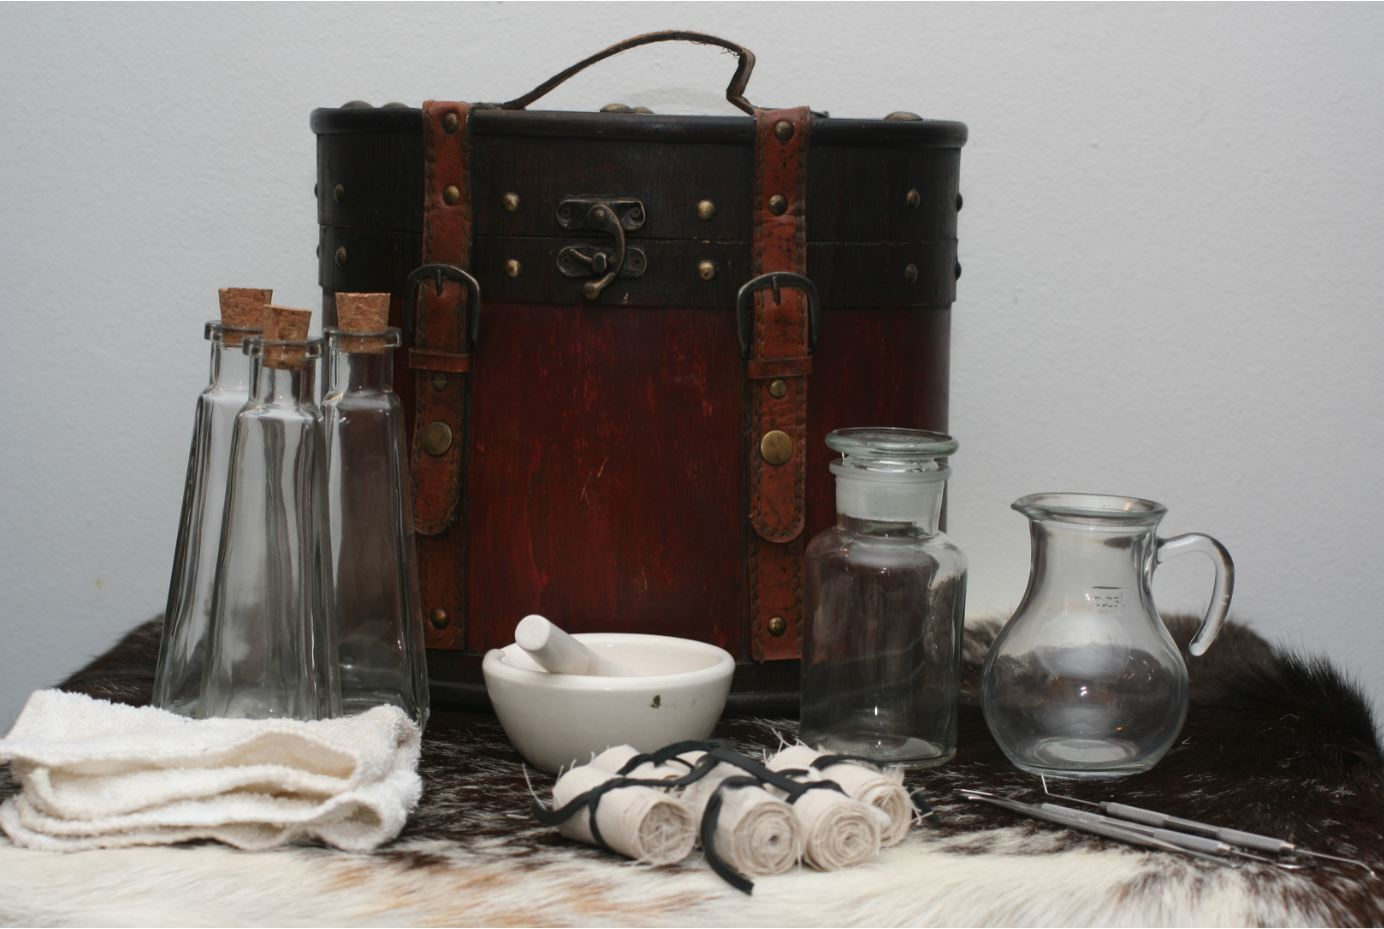 A Healer's Kit sits open and laid out [Photo Credit: Versalla]